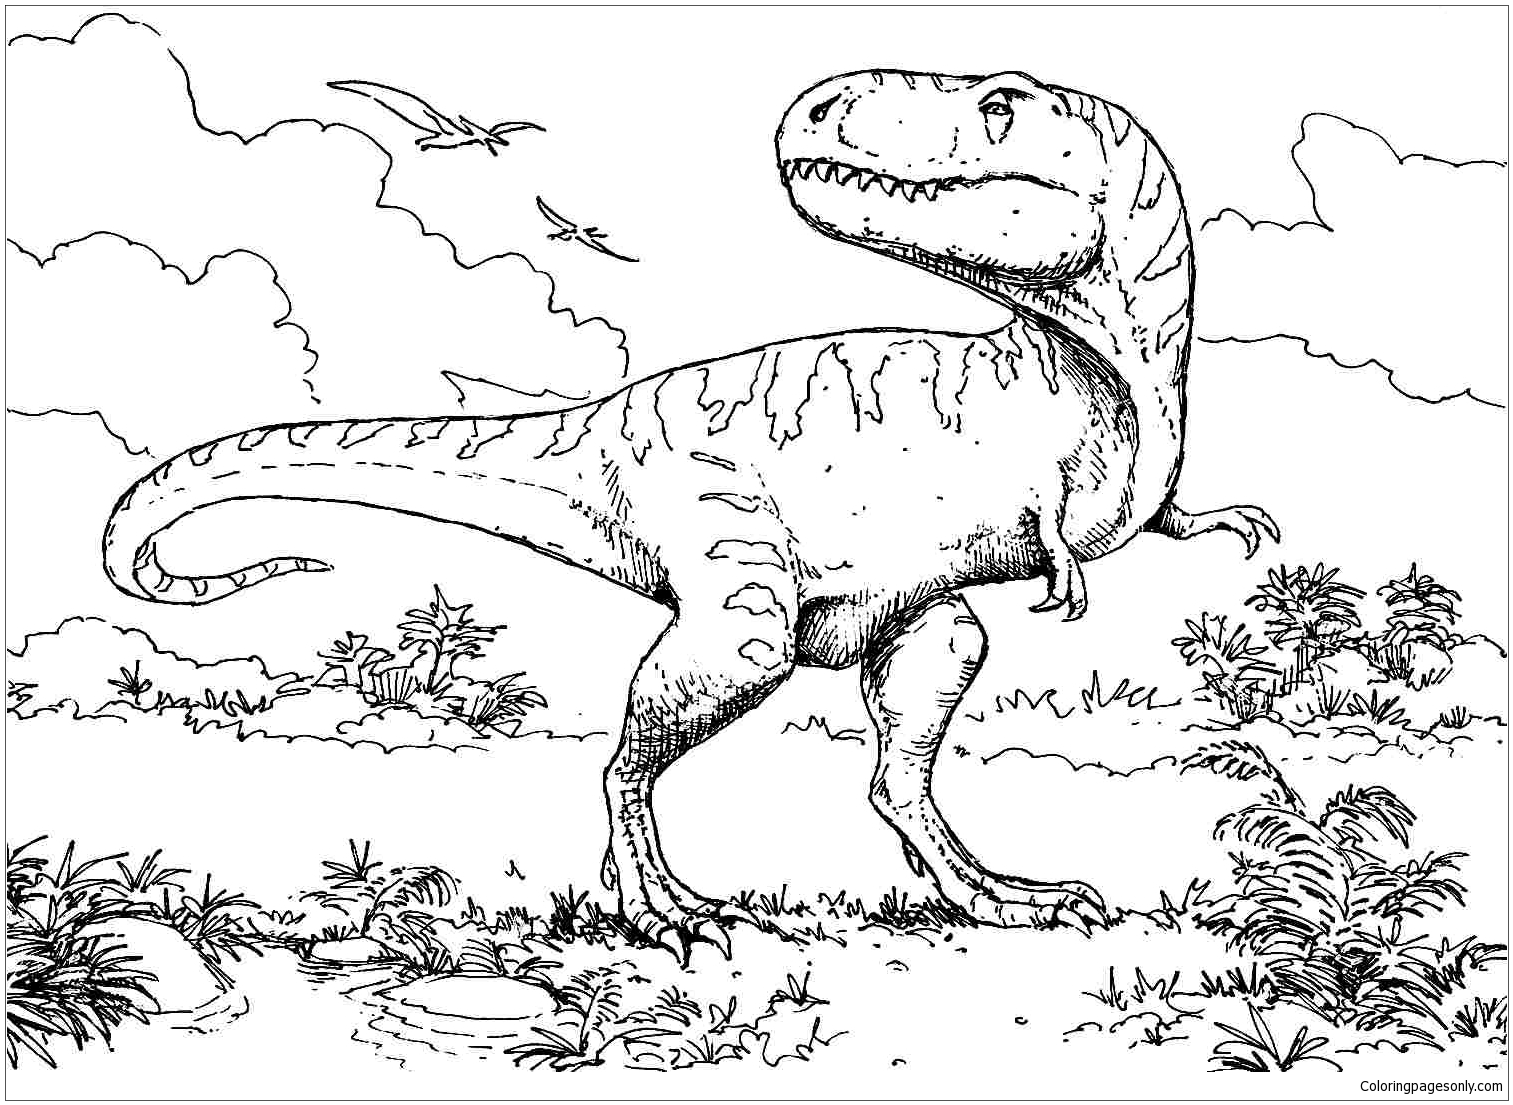 Camptosaurus Coloring Pages Coloringpagesonly Com